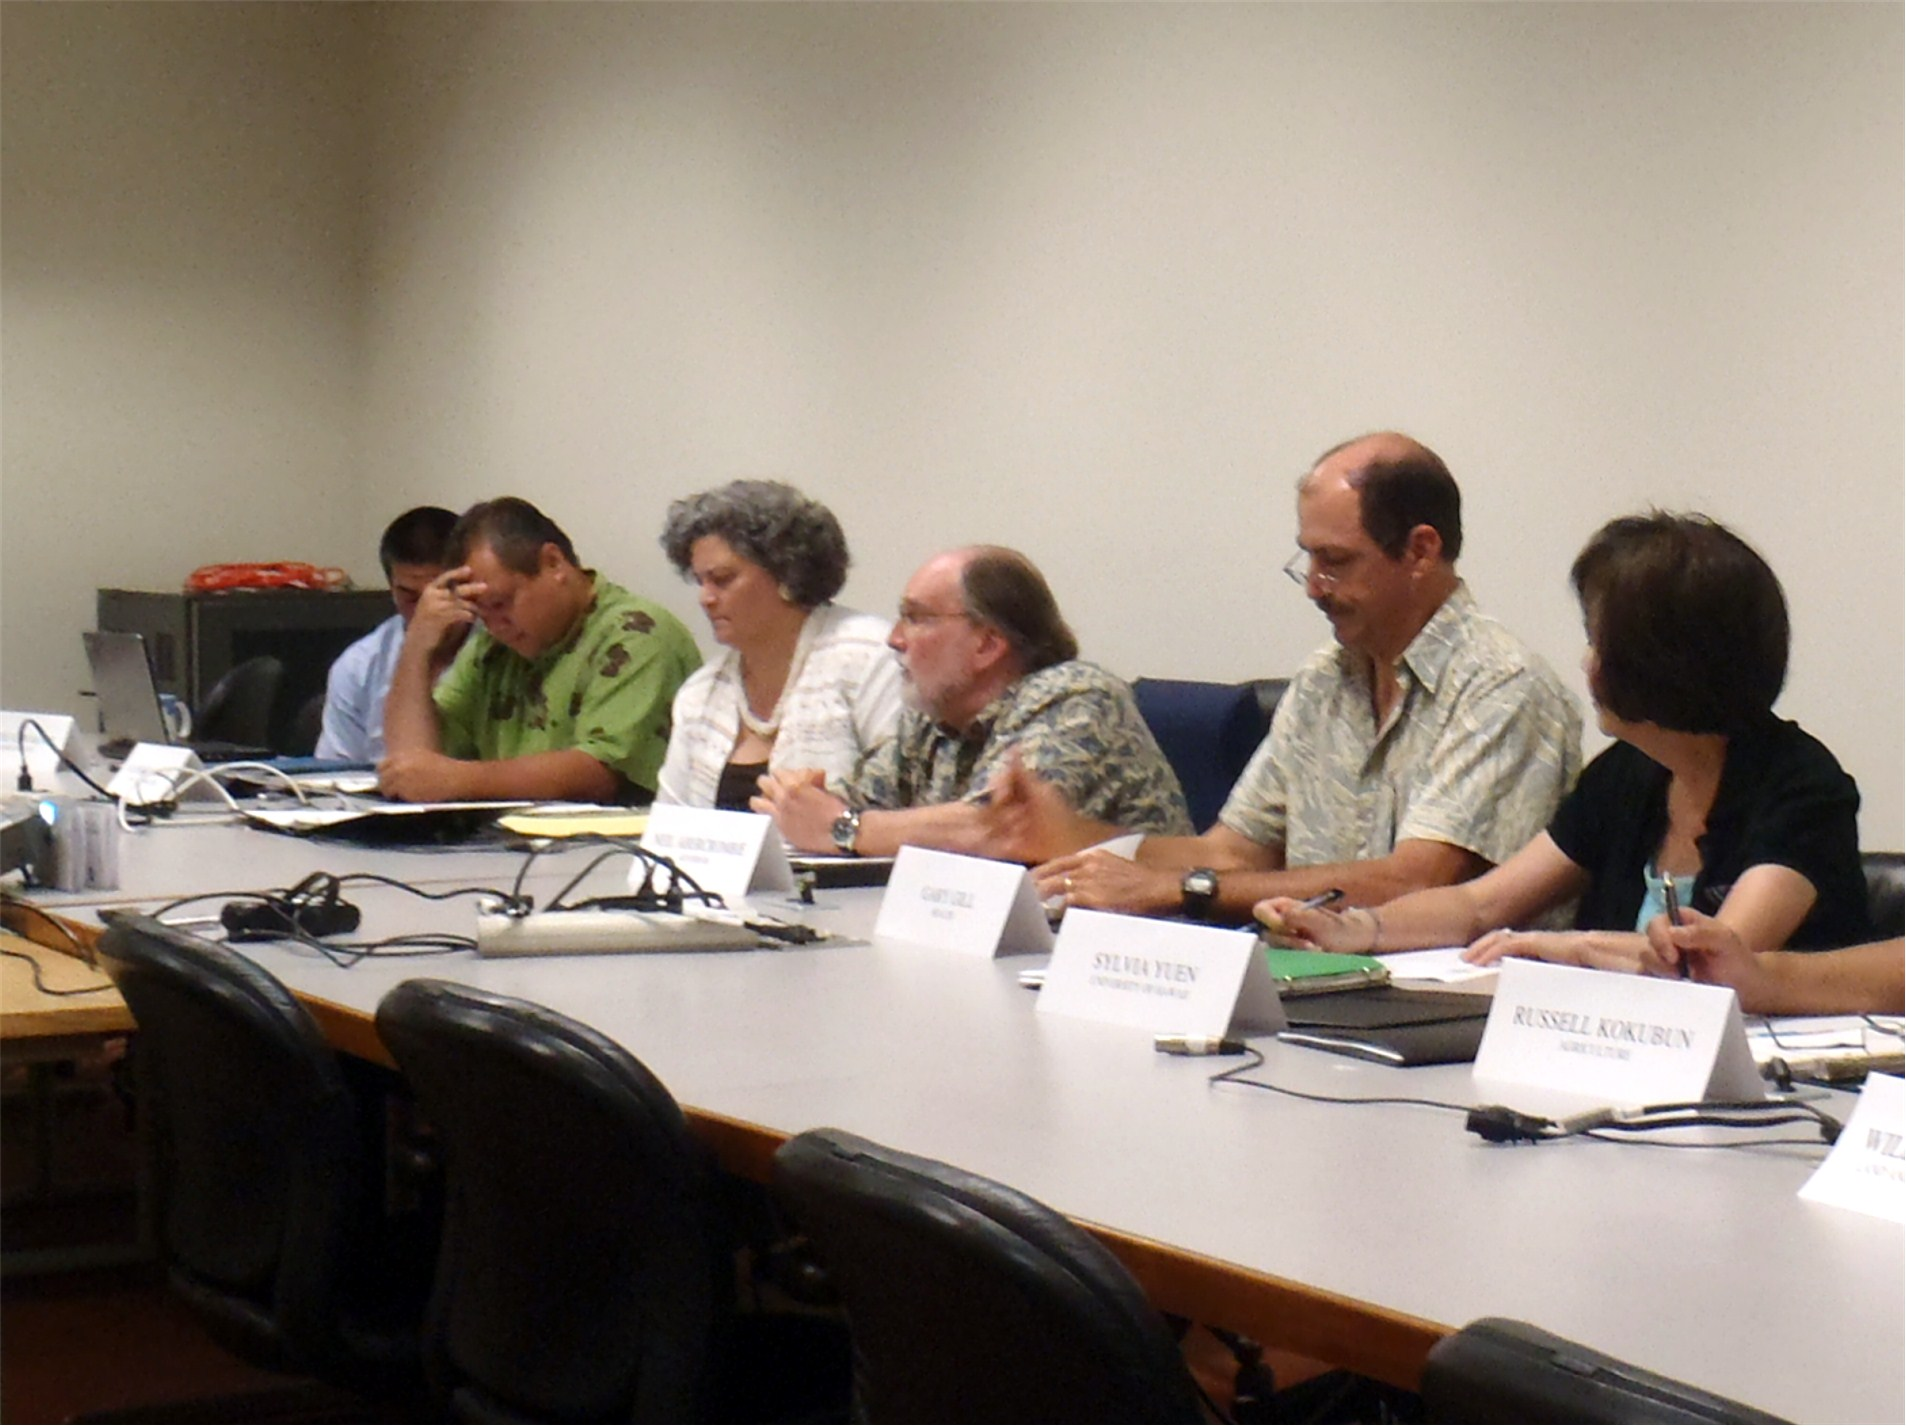 Governor Neil Abercrombie convenes the first HISC meeting under his administration in June of 2011. With the Governor are (l to r) Representative Derek Kawakami, Alapaki Nahele-a (DHHL), Keali'i Lopez (DCCA), Gary Gill (DOH), and Sylvia Yuen (UH).